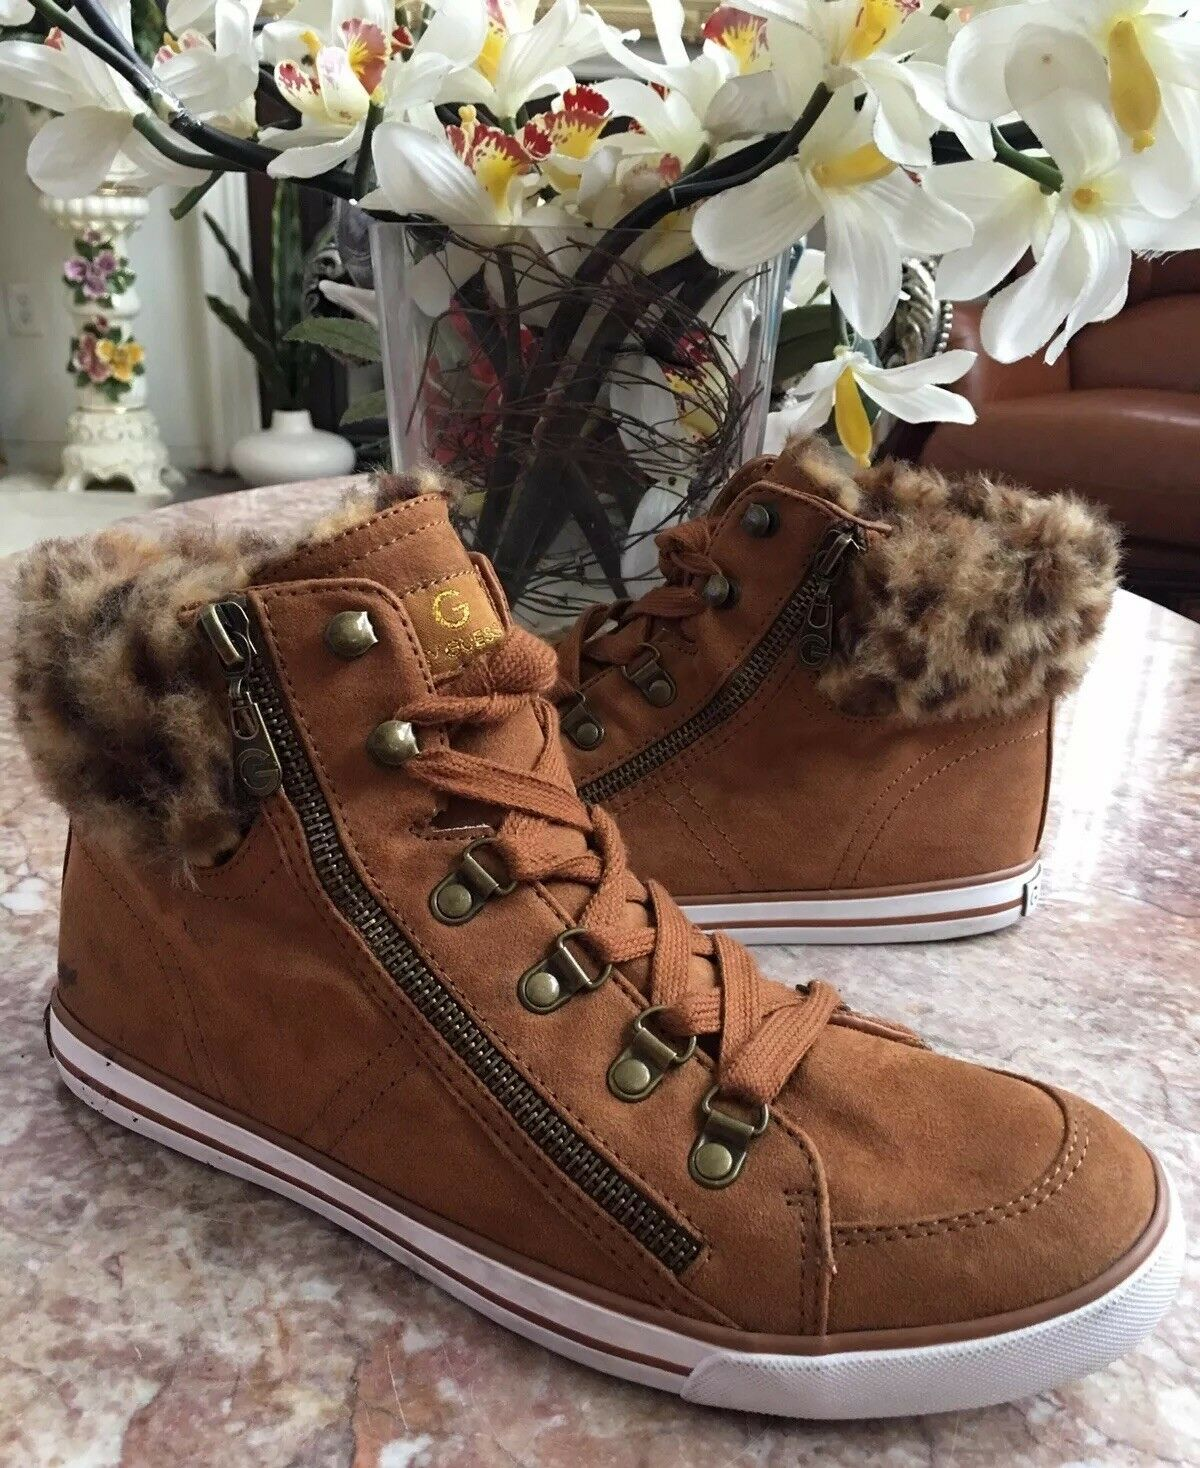 G by GUESS Oshay Hightop Women Tan Suede Faux Fur Sneakers Sz 9.5 EUC